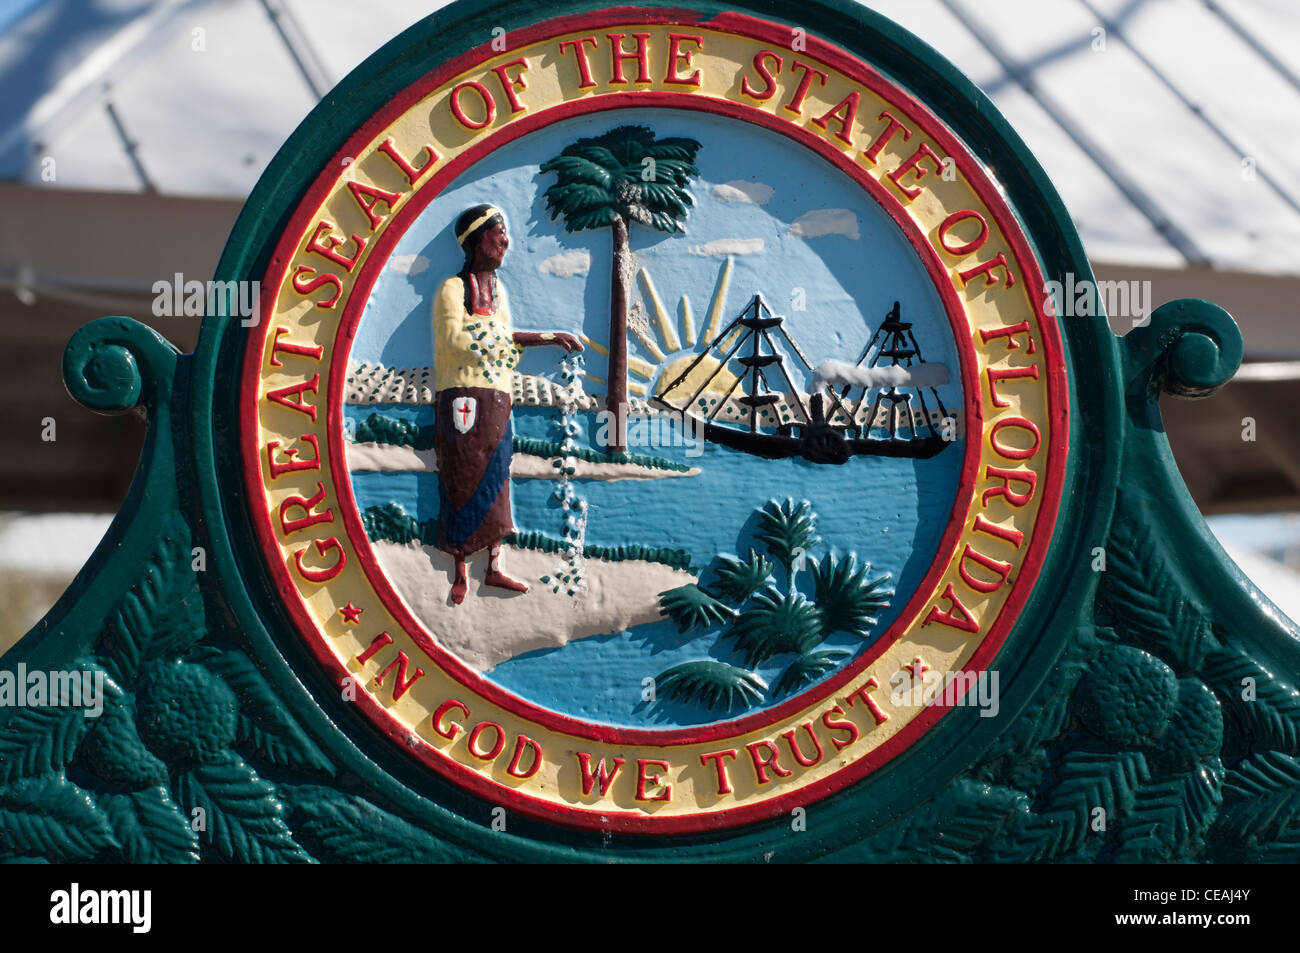 Great Seal of The State of Florida sign. In God we trust. Florida, United States, USA, North America - Stock Image